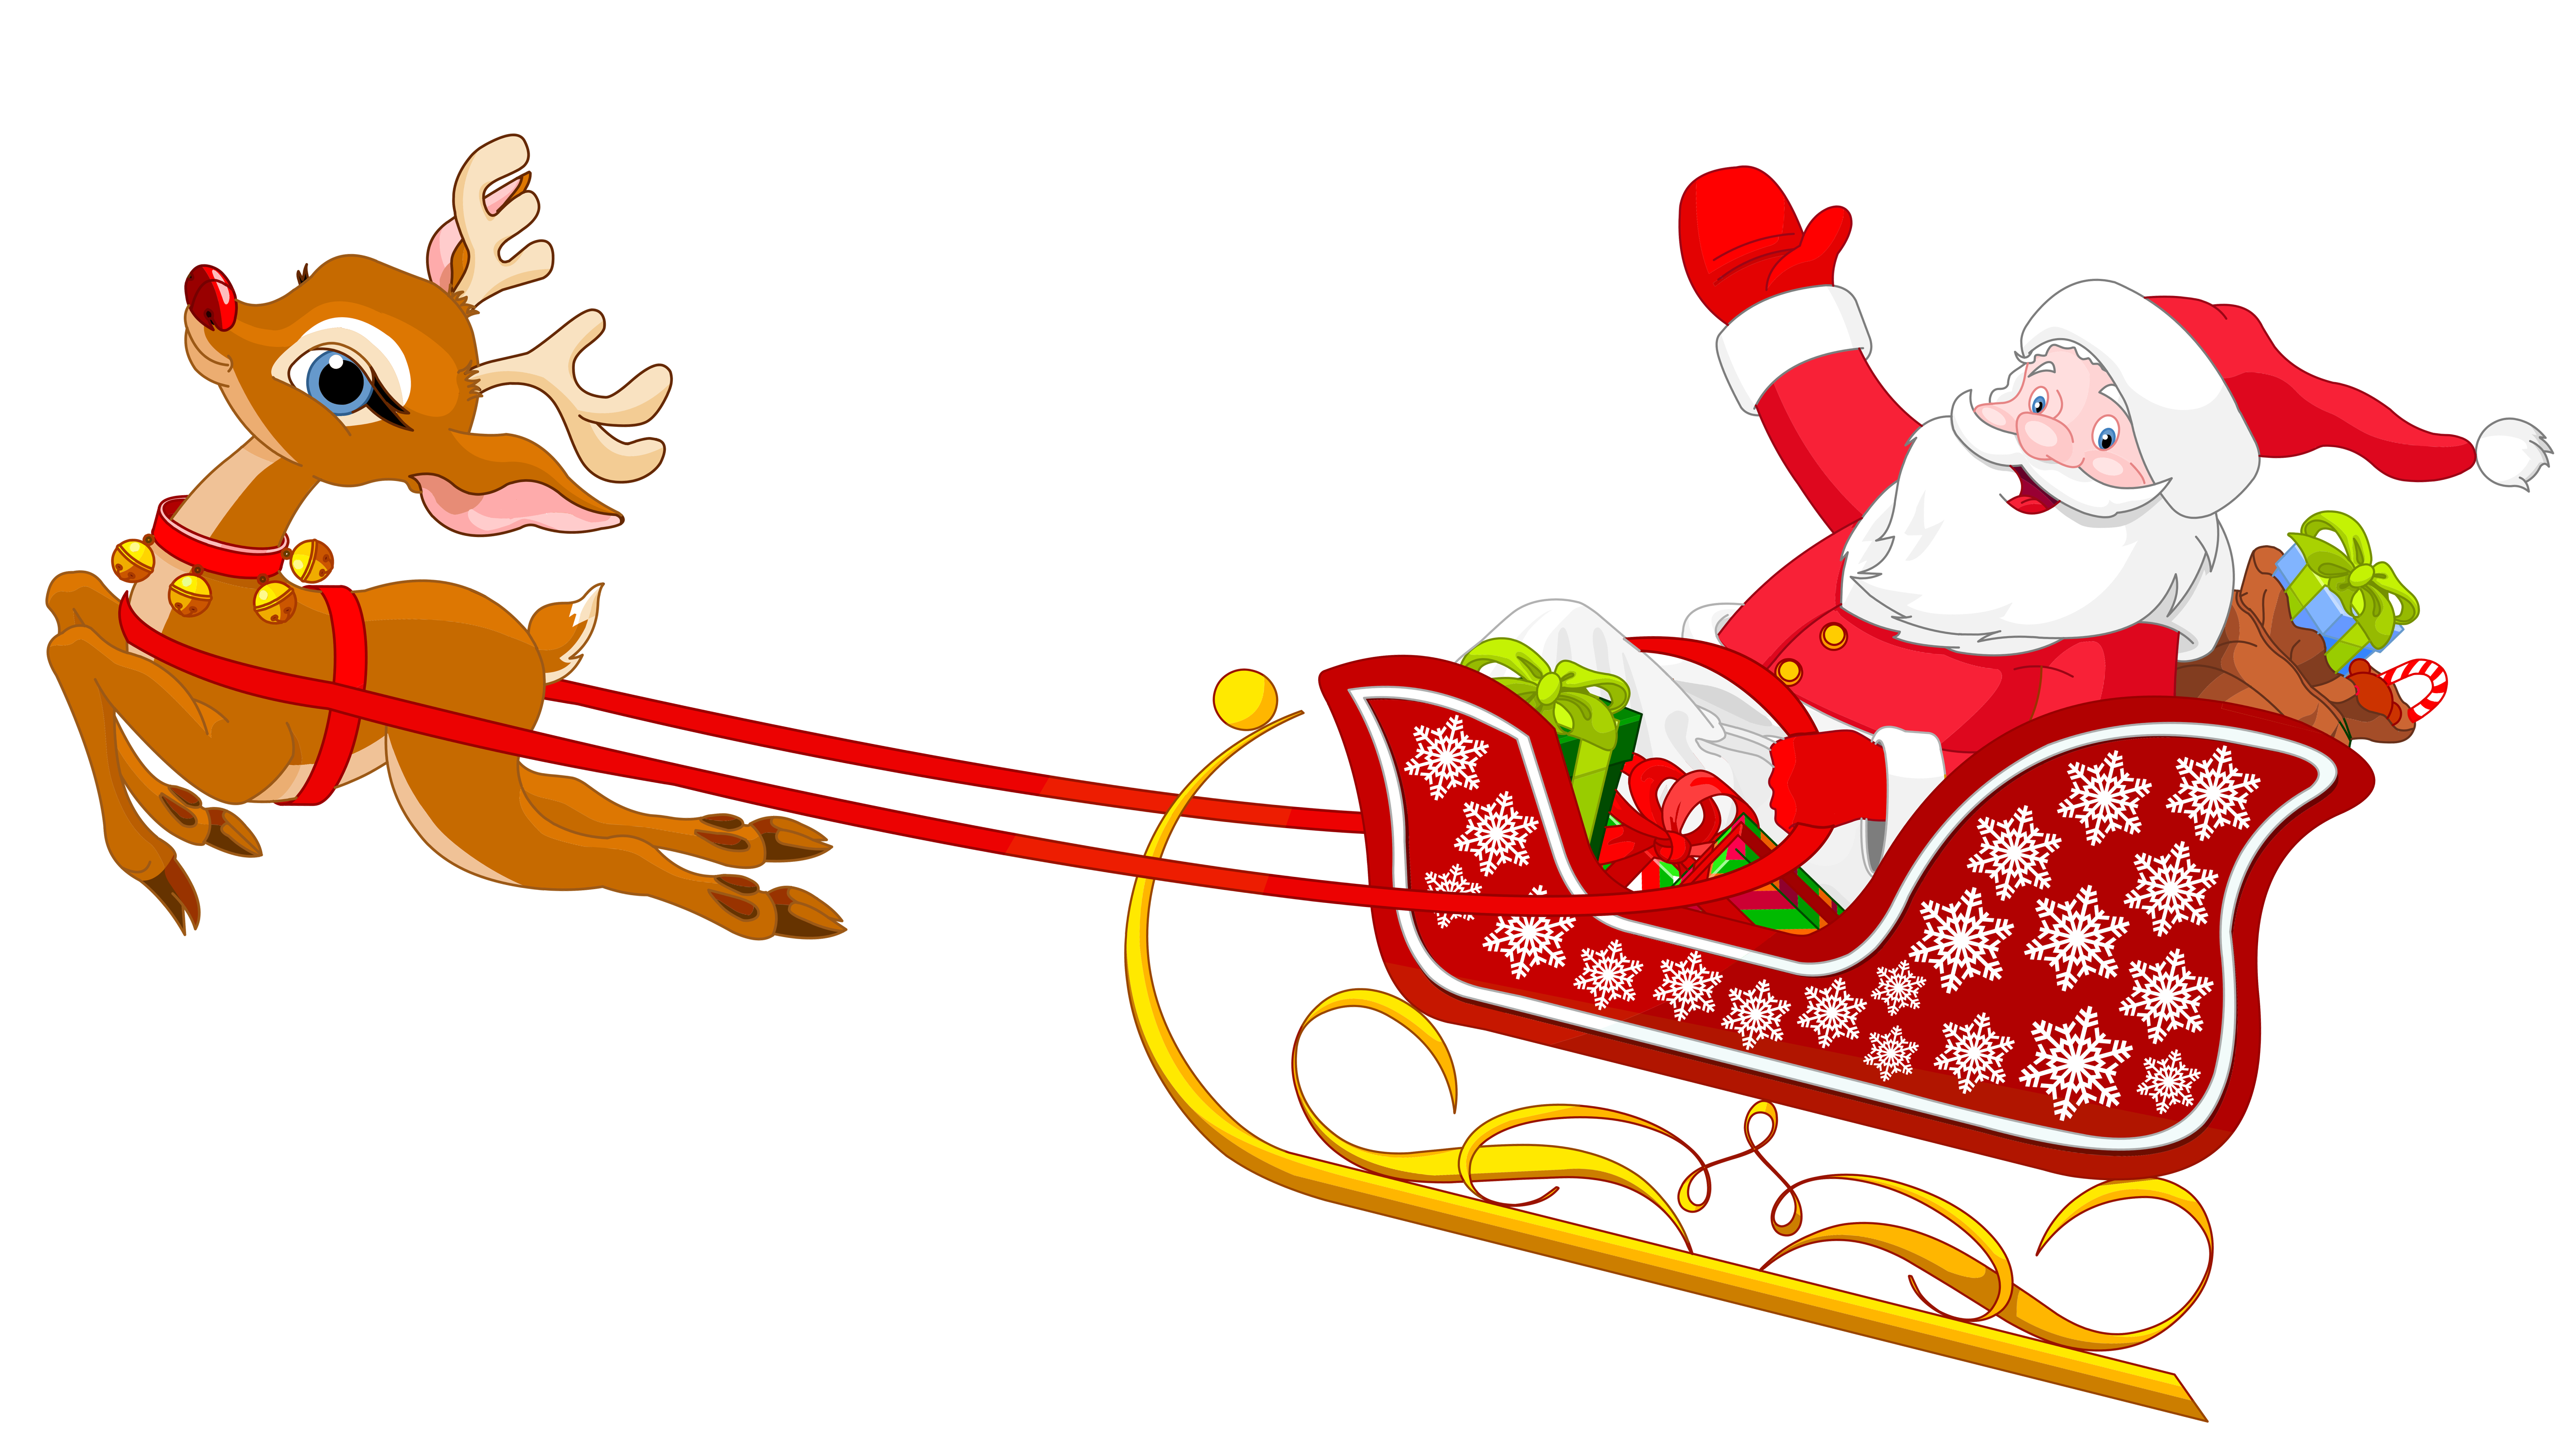 And his sleigh at. 2016 clipart santa claus picture royalty free library